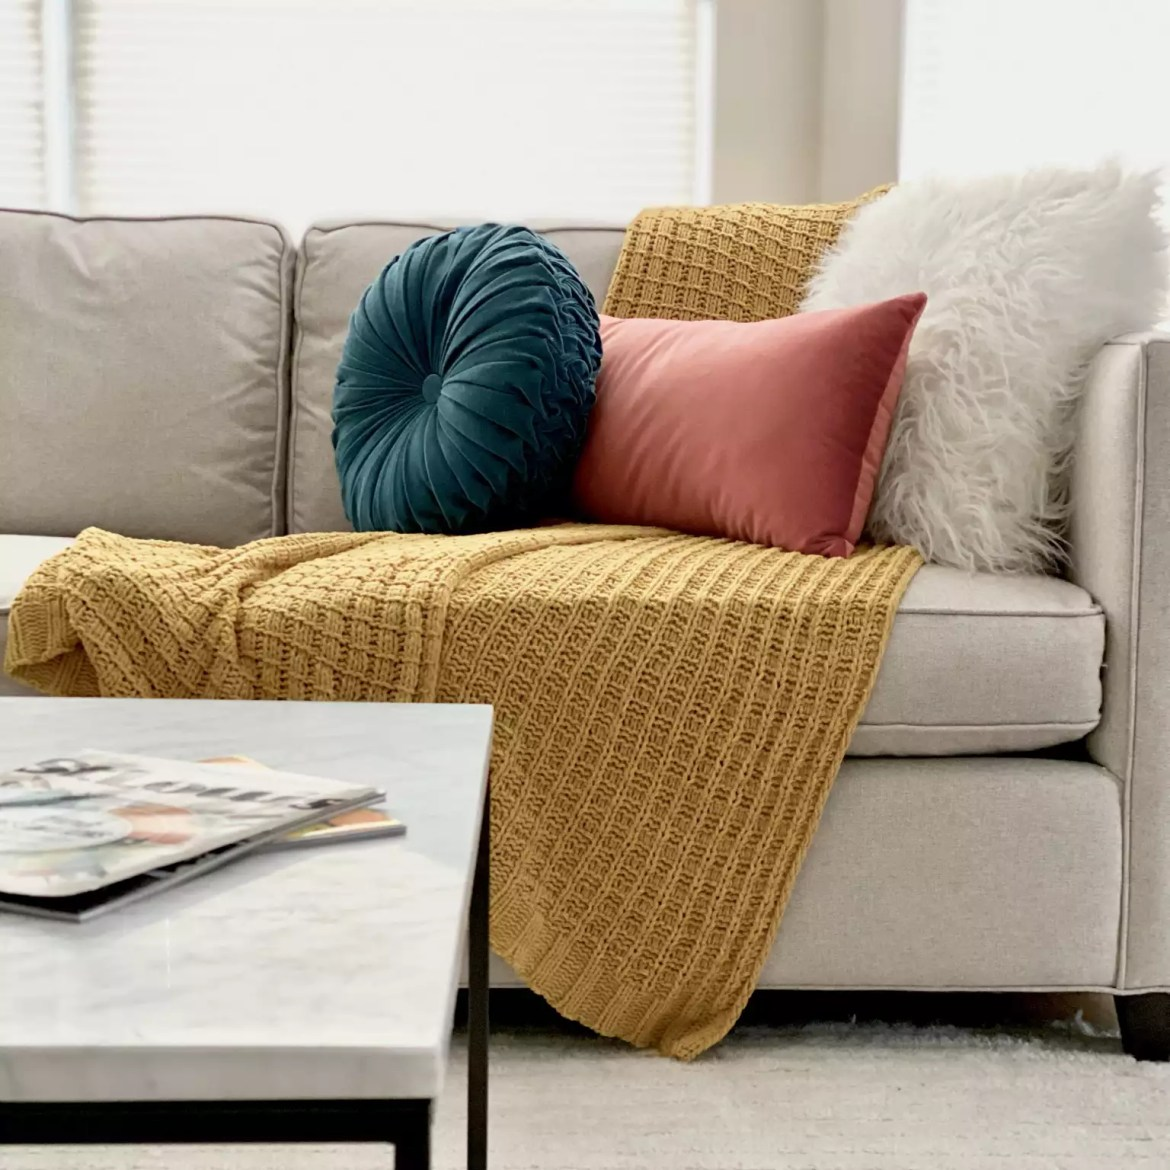 Sofa with mustard throw blanket and velvet pillows.